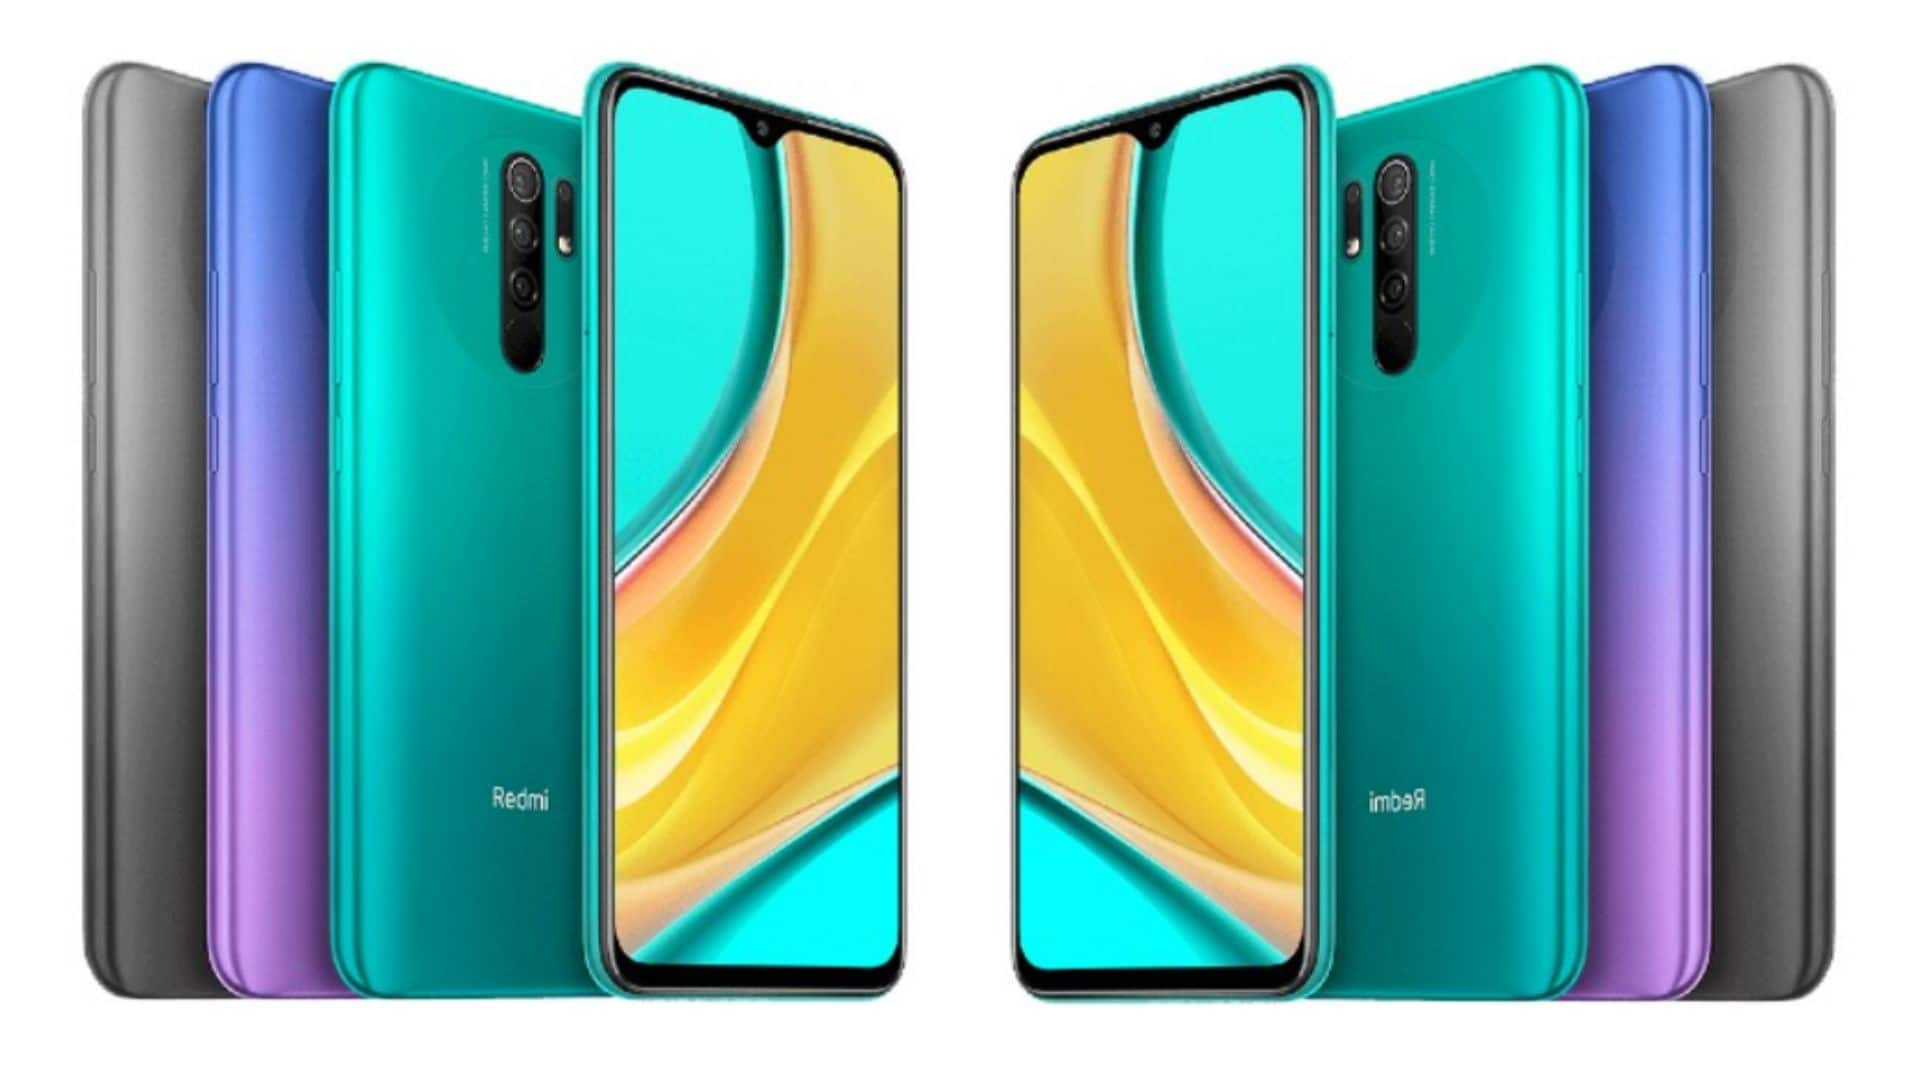 Redmi 9 Prime flash sale today at 12PM on Amazon and mi.com: Check offers